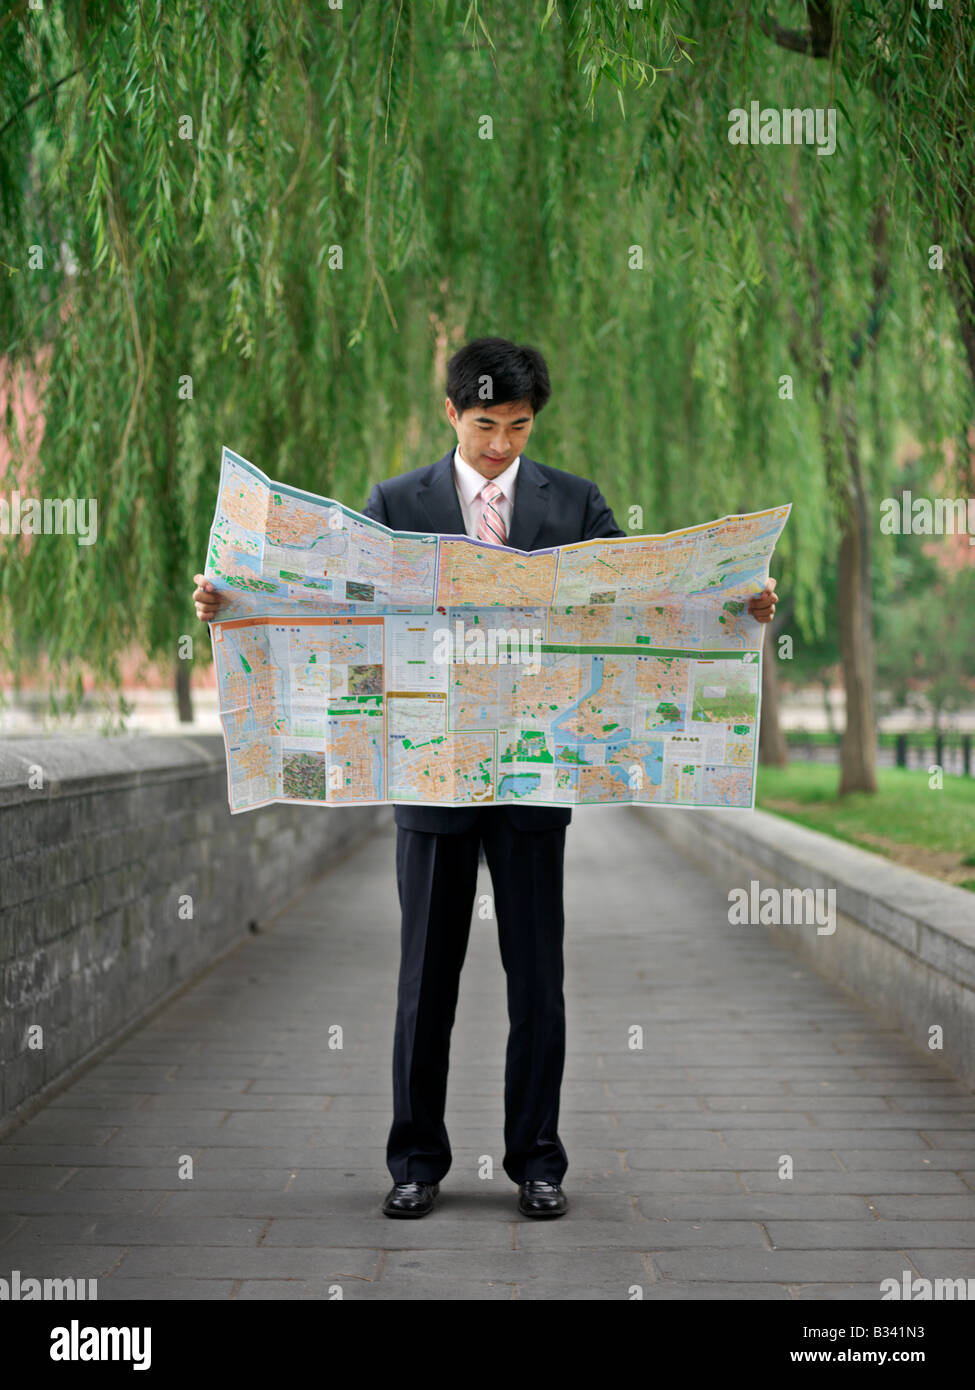 Chinese man looking at a map to help reorient or locate himself. Stock Photo